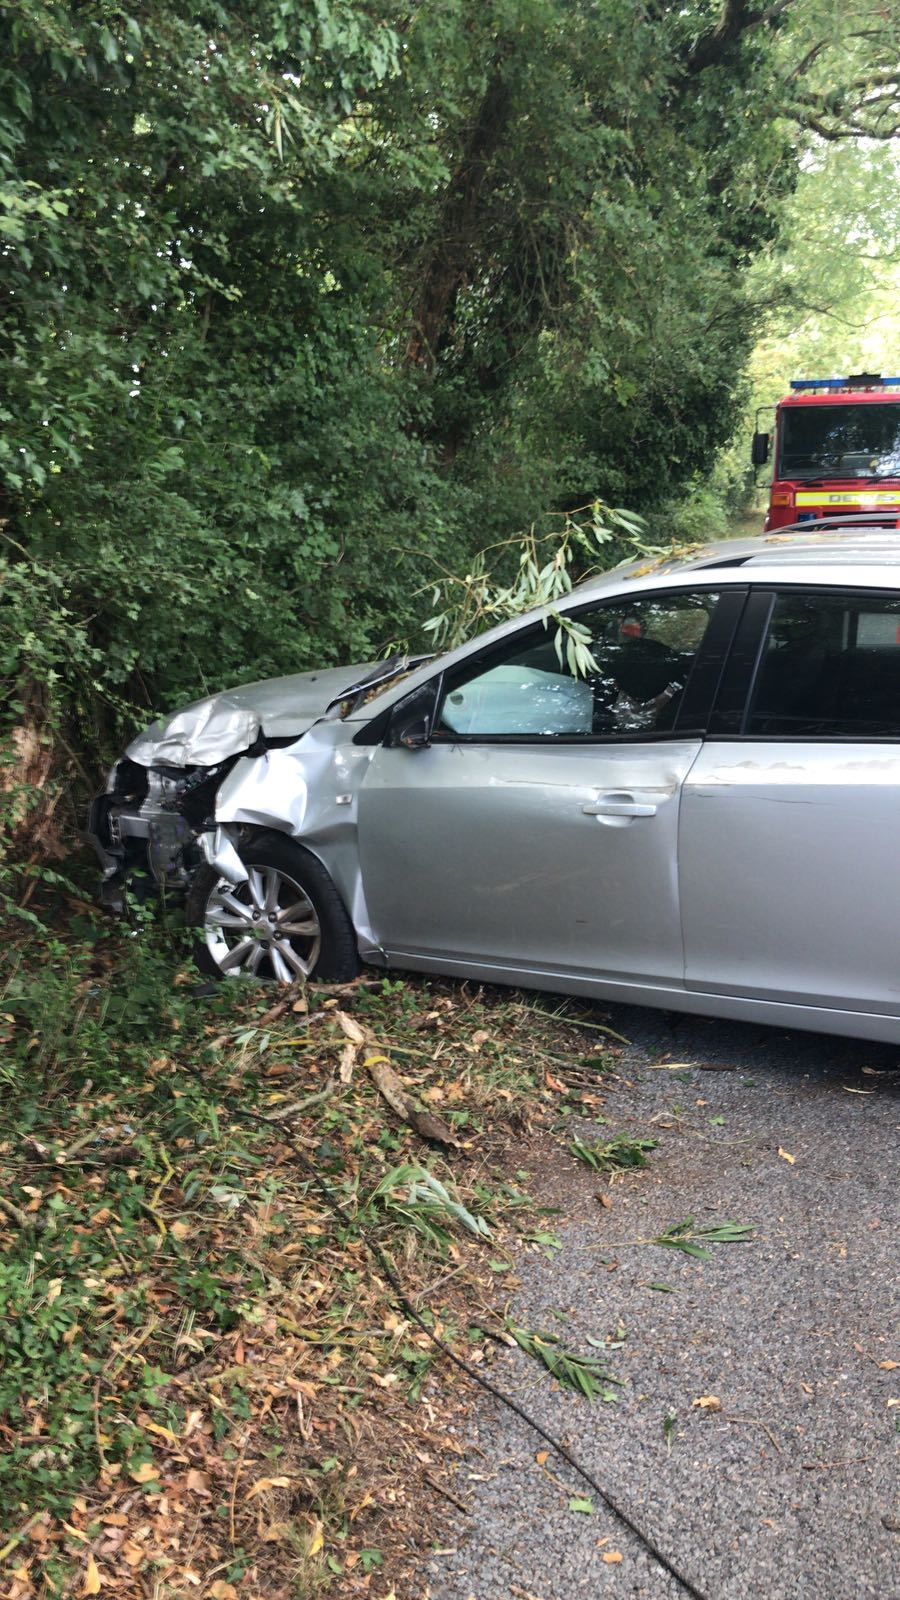 WRECKAGE: A car was damaged in a crash in Stratford Road, Evesham. Picture by @HWFirePebworth